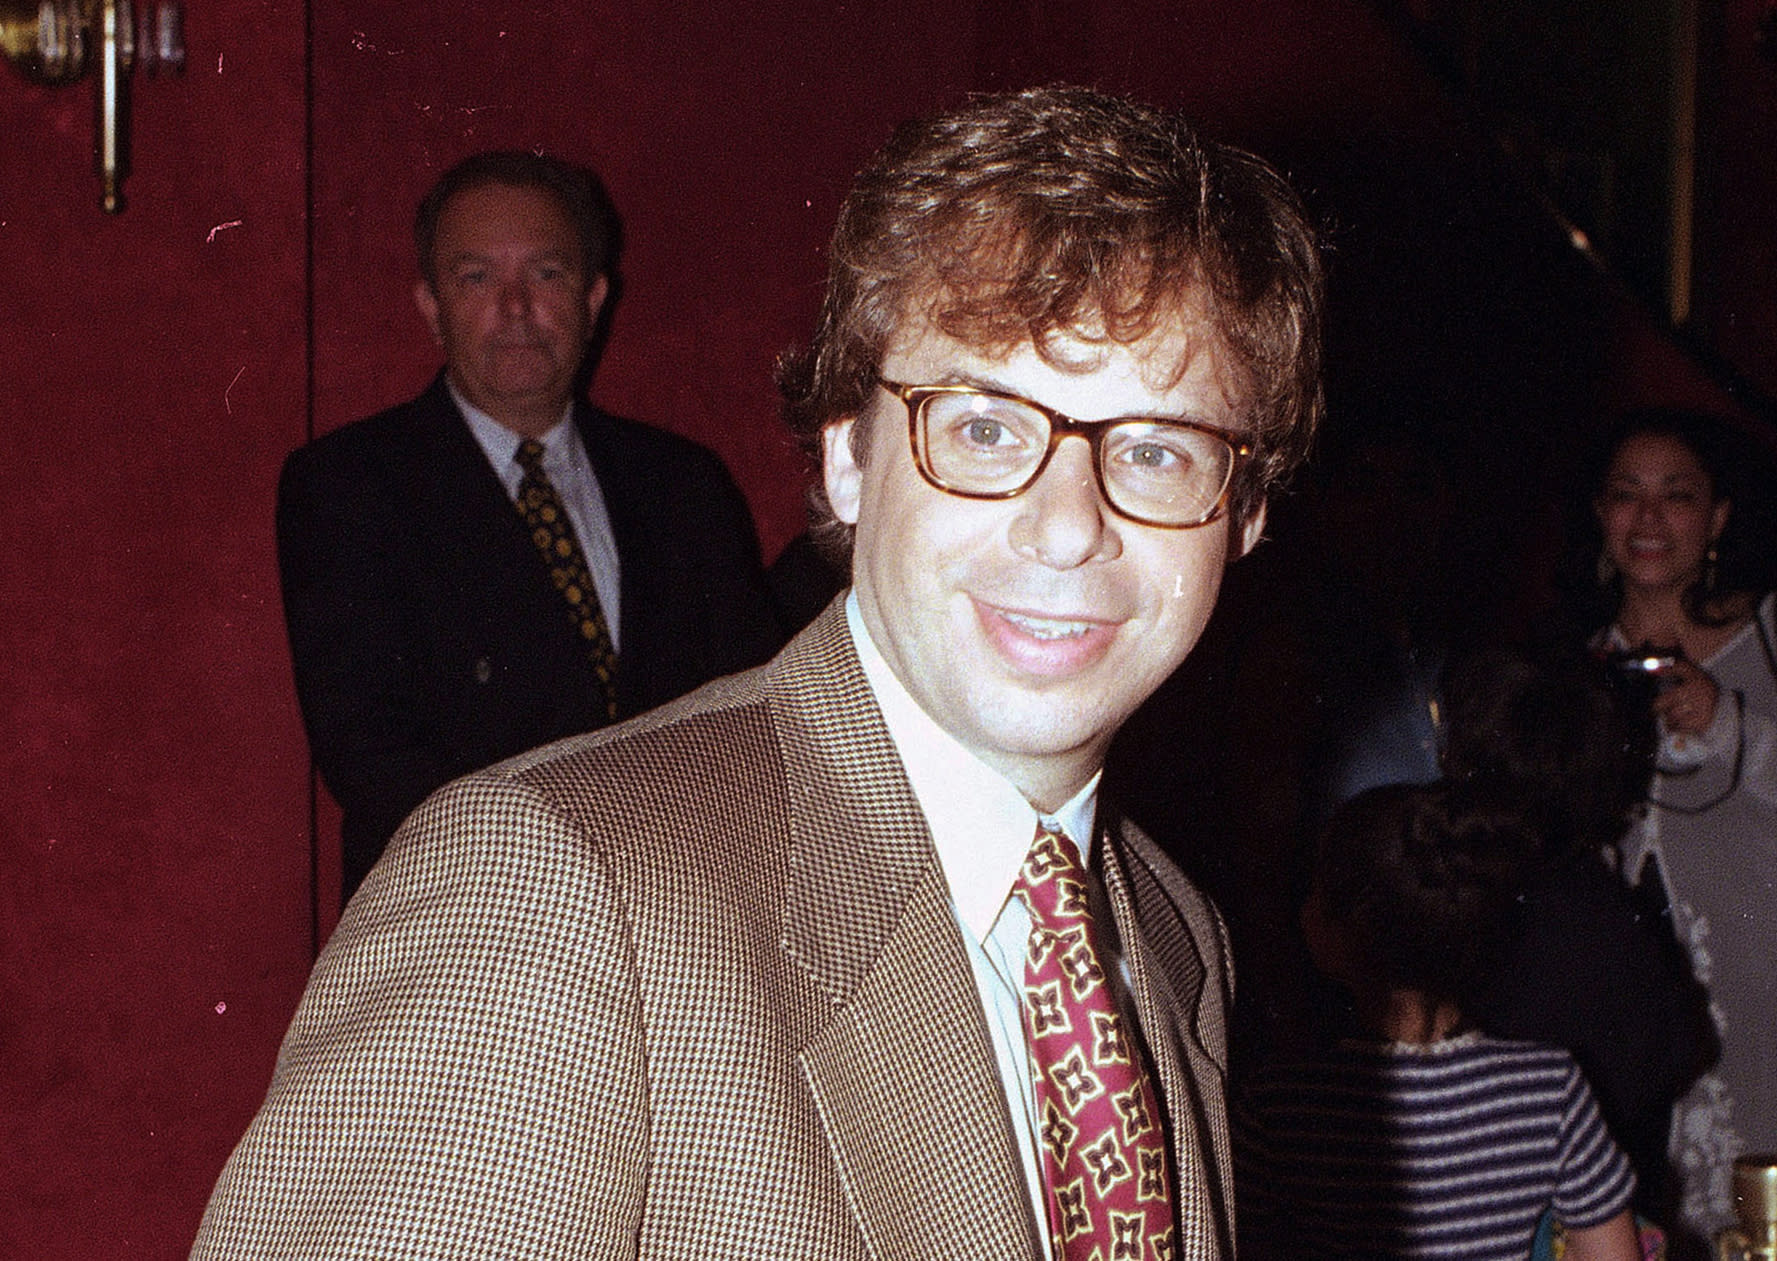 Rick Moranis of 'Honey, I Shrunk the Kids' punched in head in 'random' attack